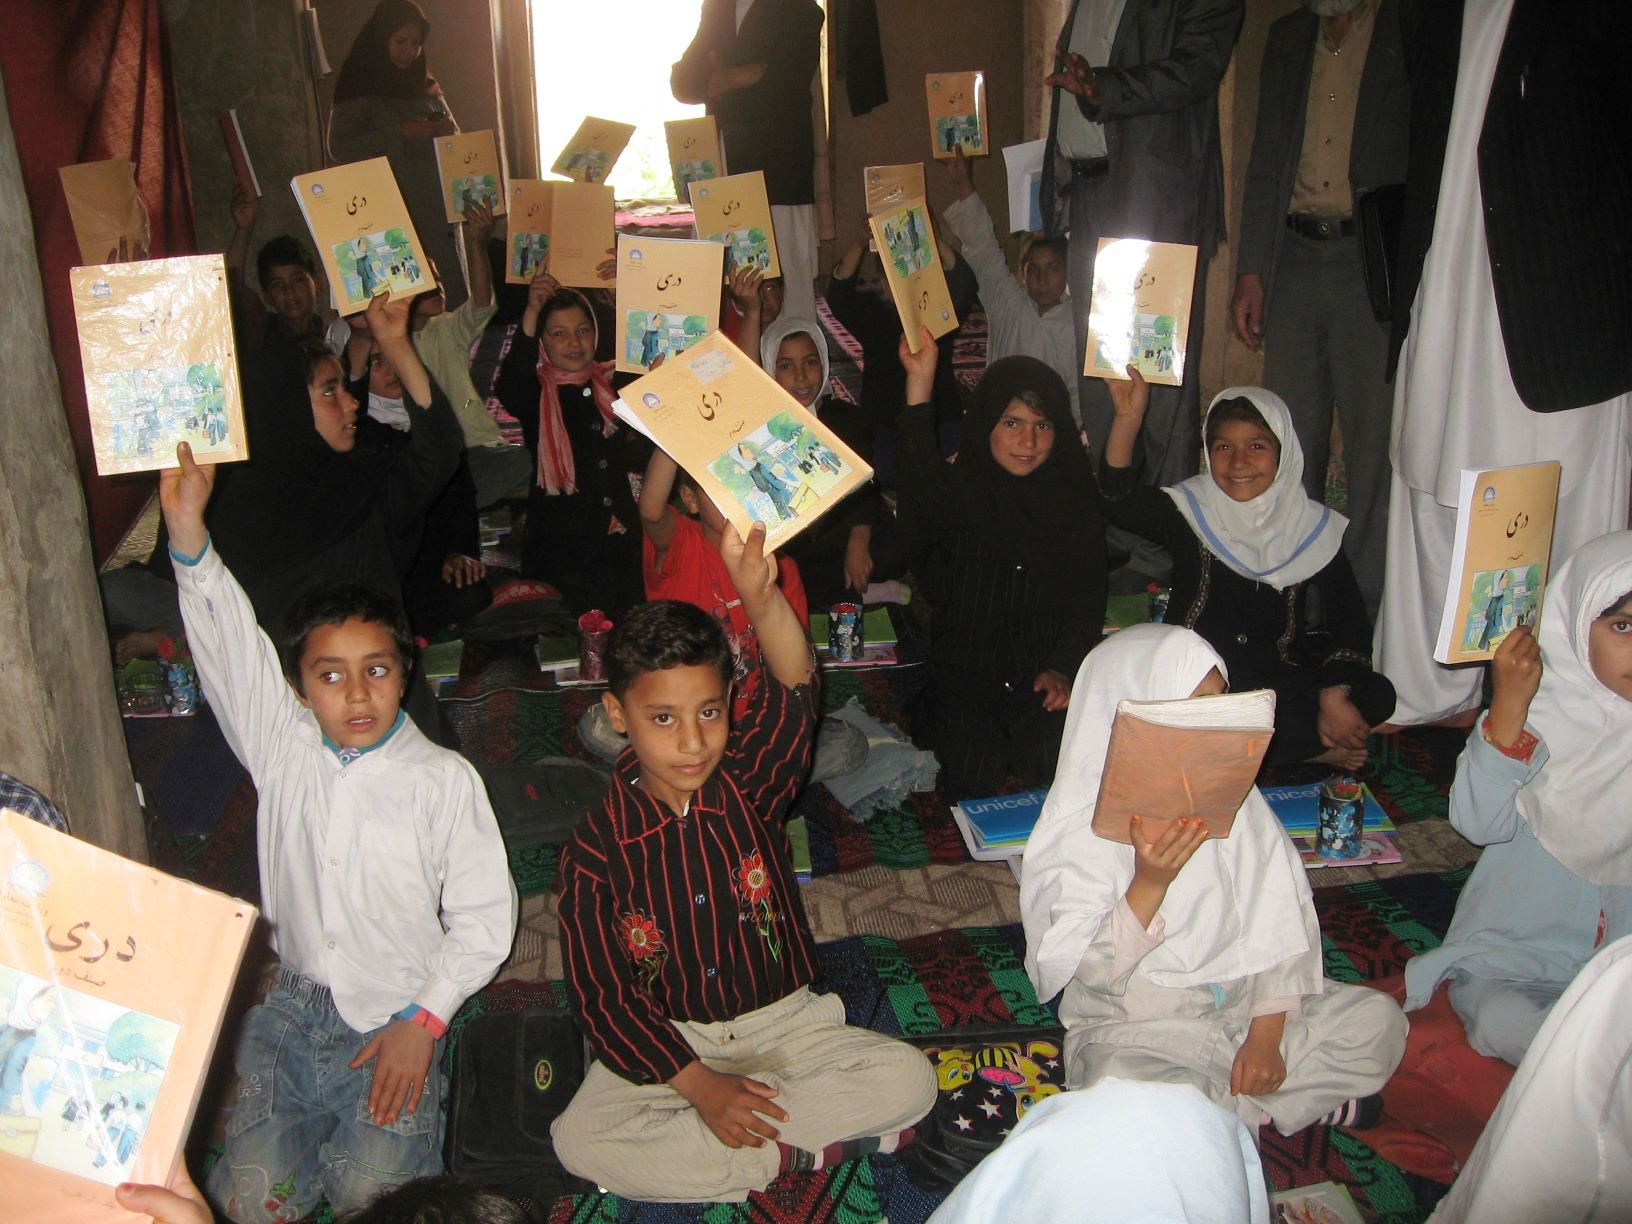 School books being used by children at school in Herat, Afghanistan